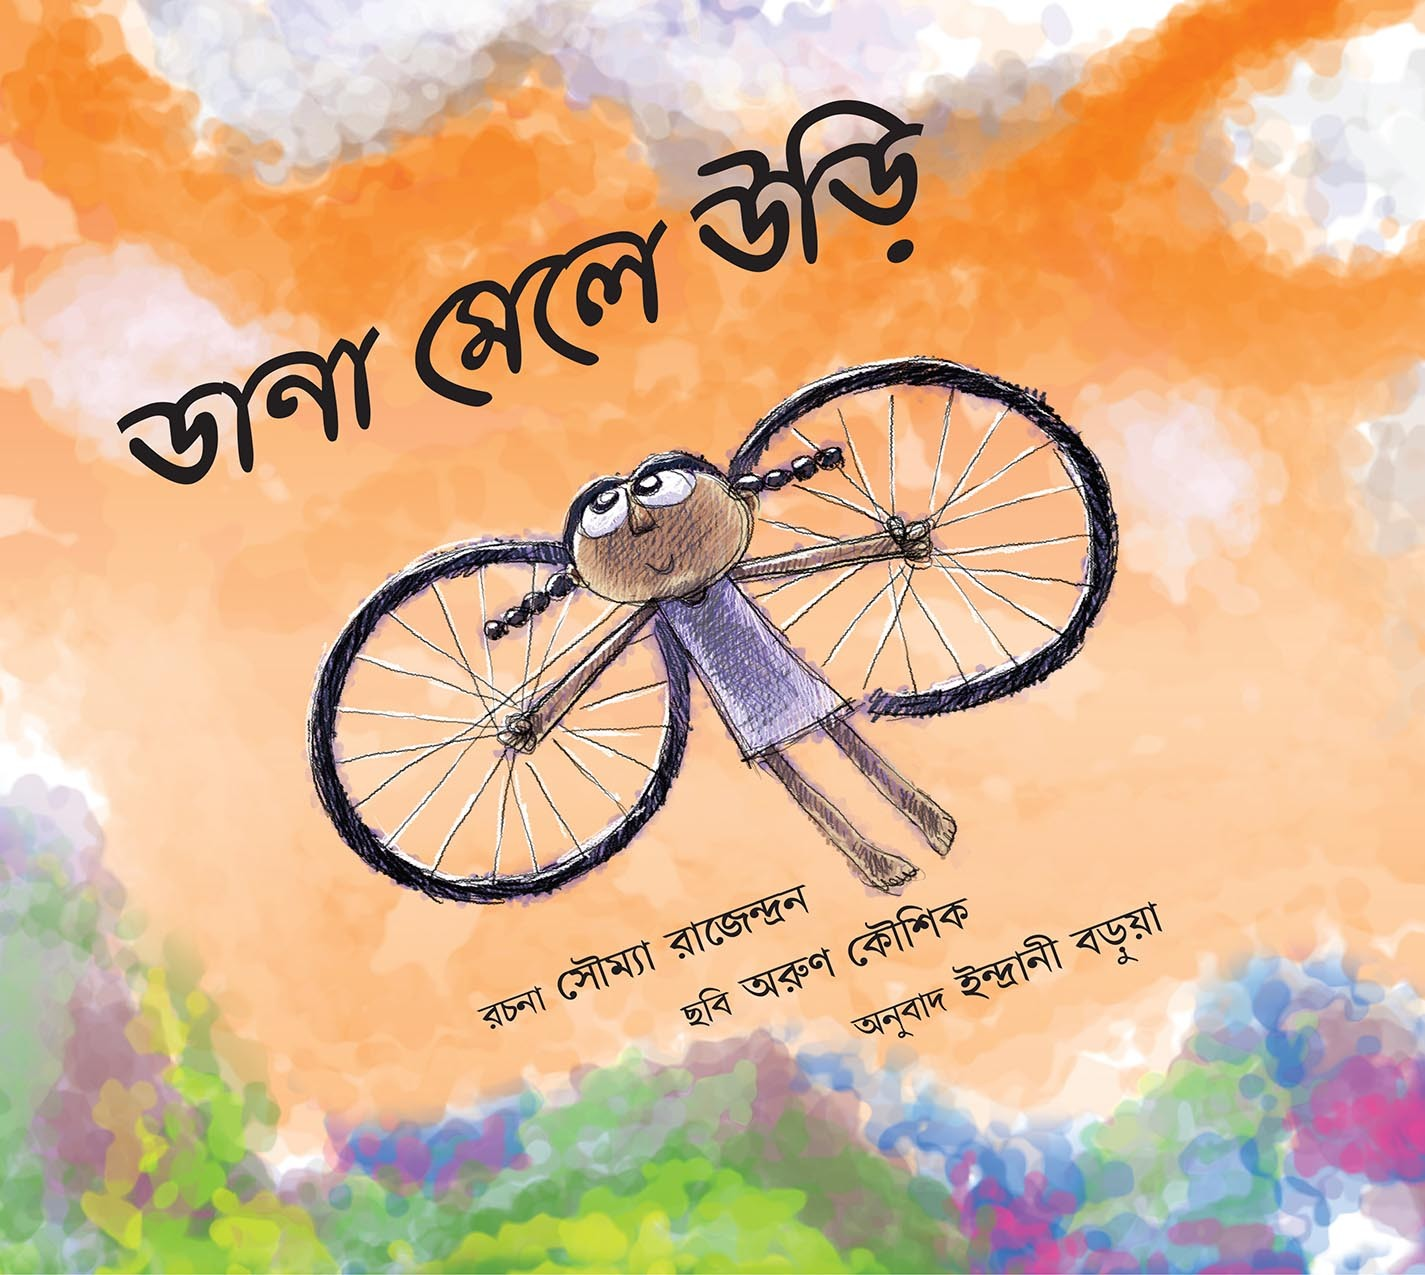 Wings To Fly/Dana Meley Udi (Bengali)